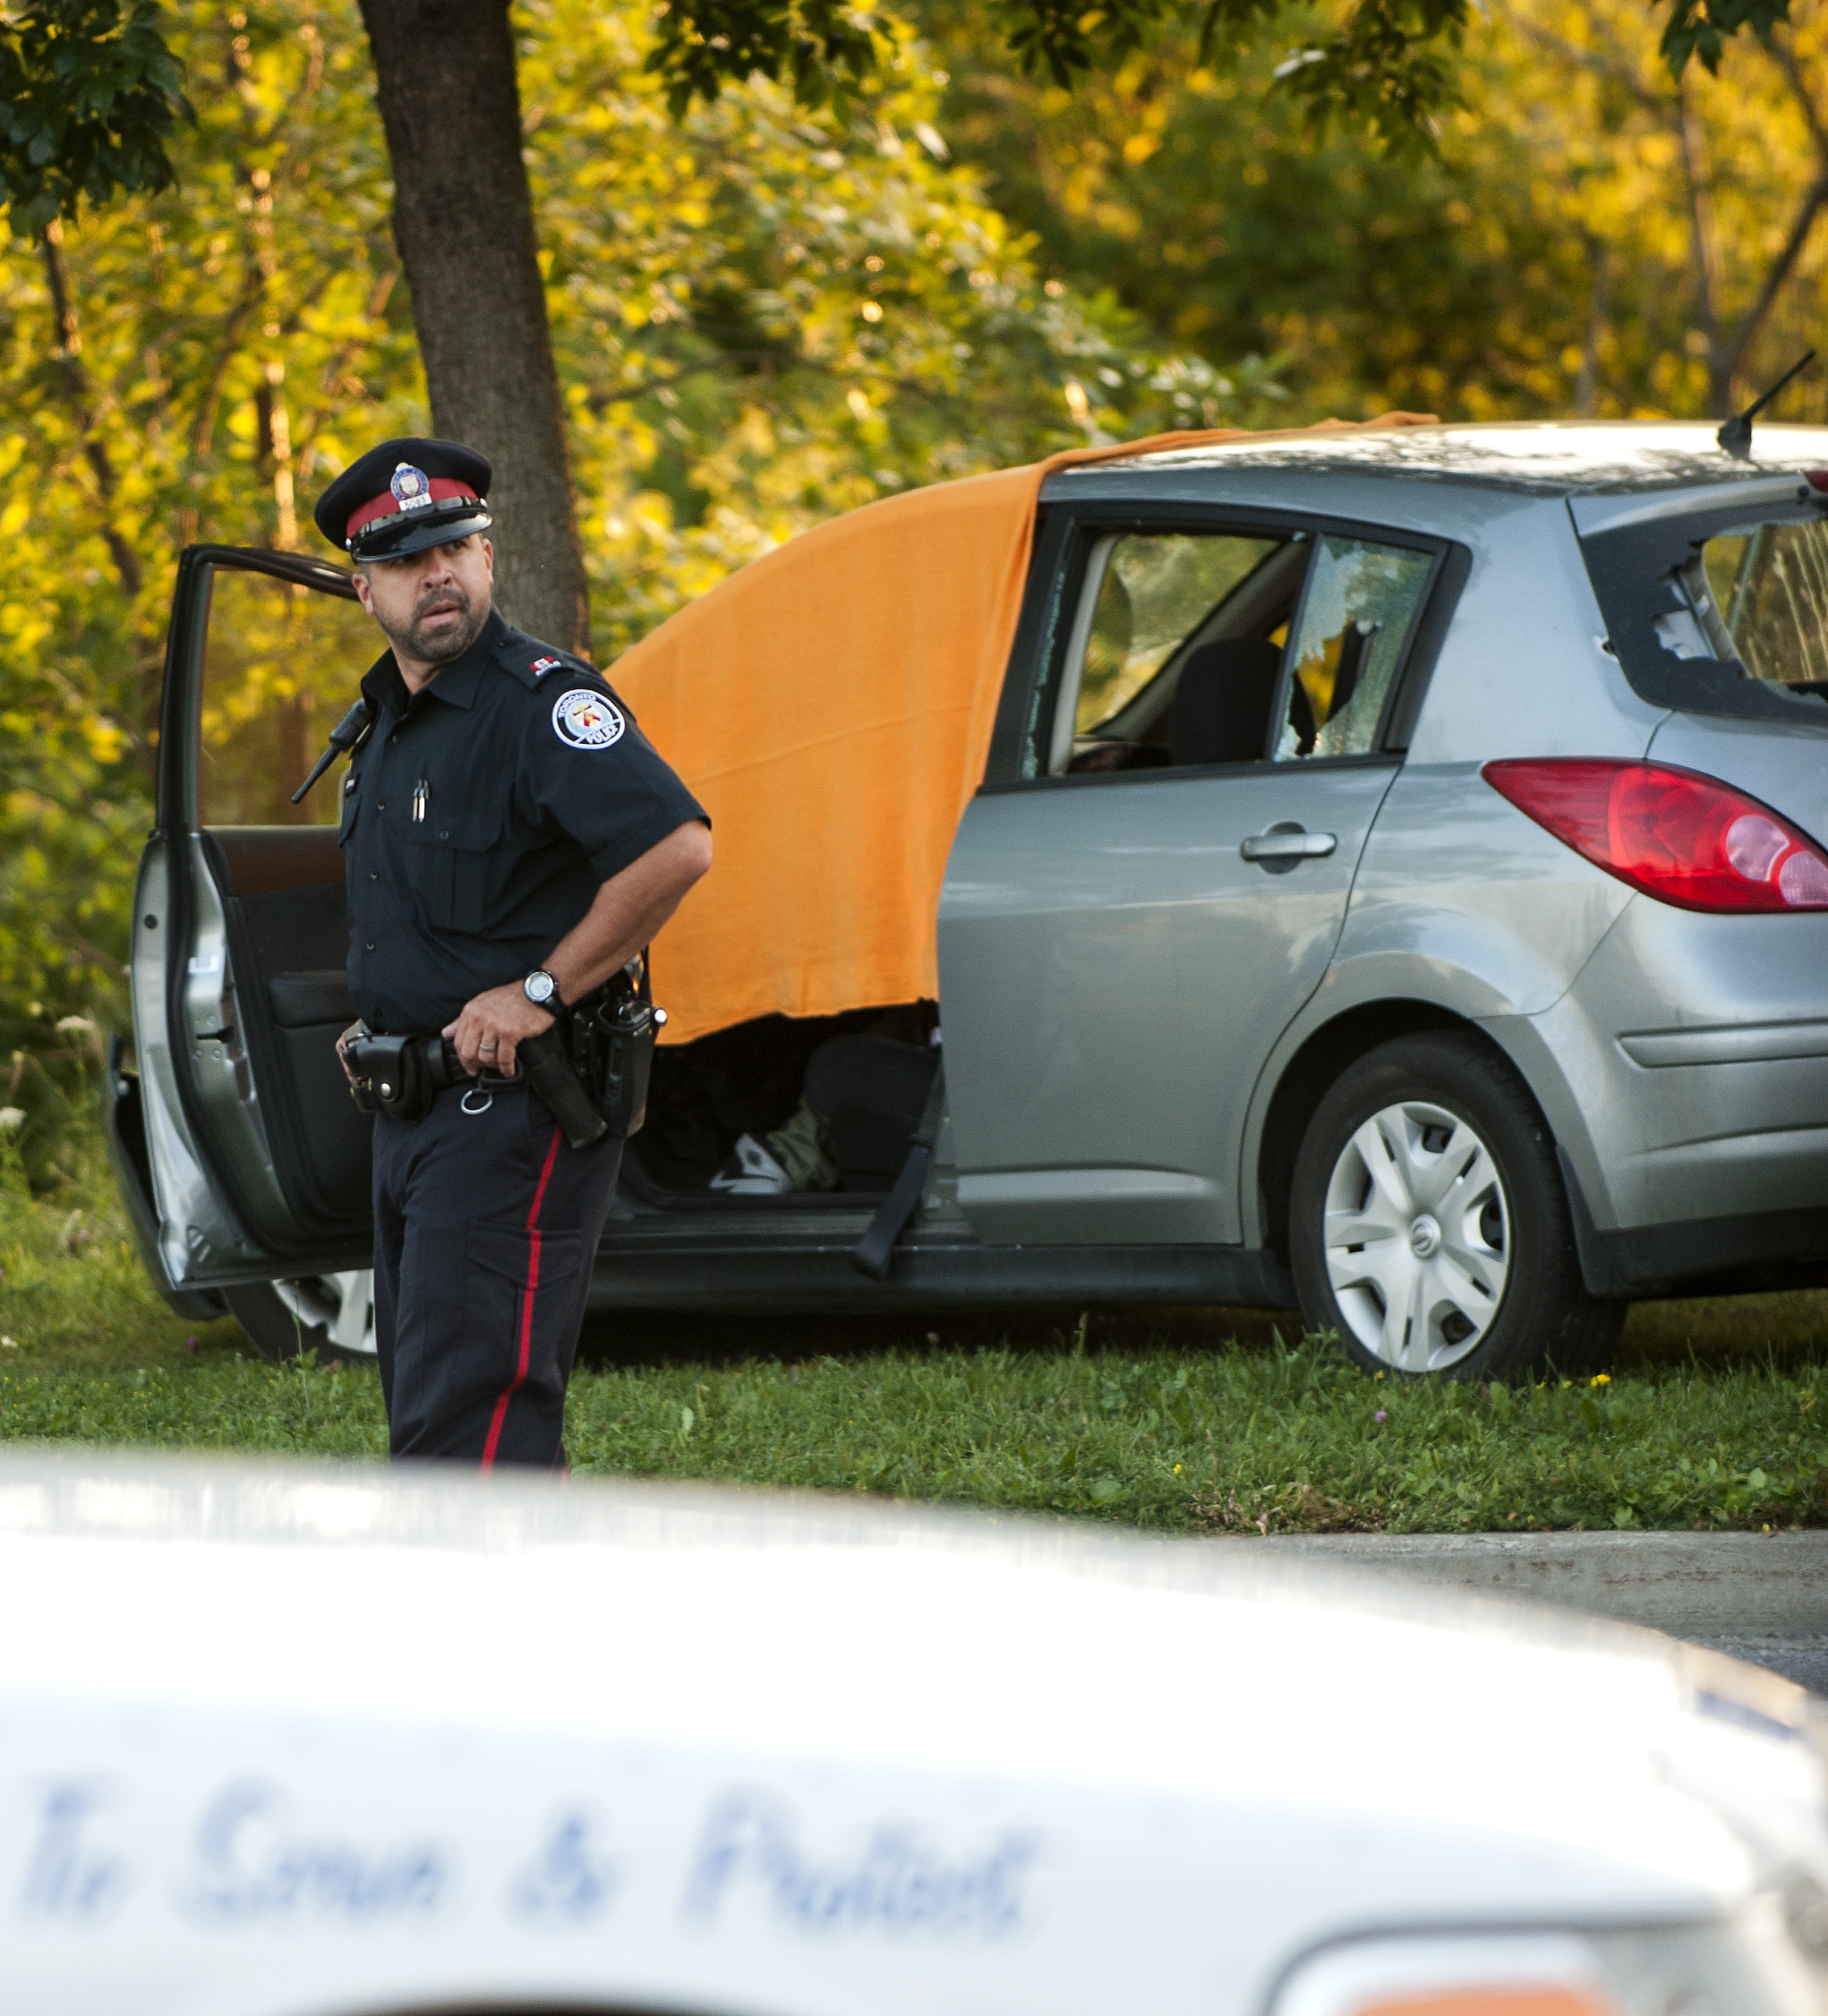 A Toronto Police officer watches the growing crowd at a shooting scene at Jane St and Eglinton Ave on August 8, 2014. The passenger was rushed to hospital in critical condition, while the driver was pronounced dead at the scene.